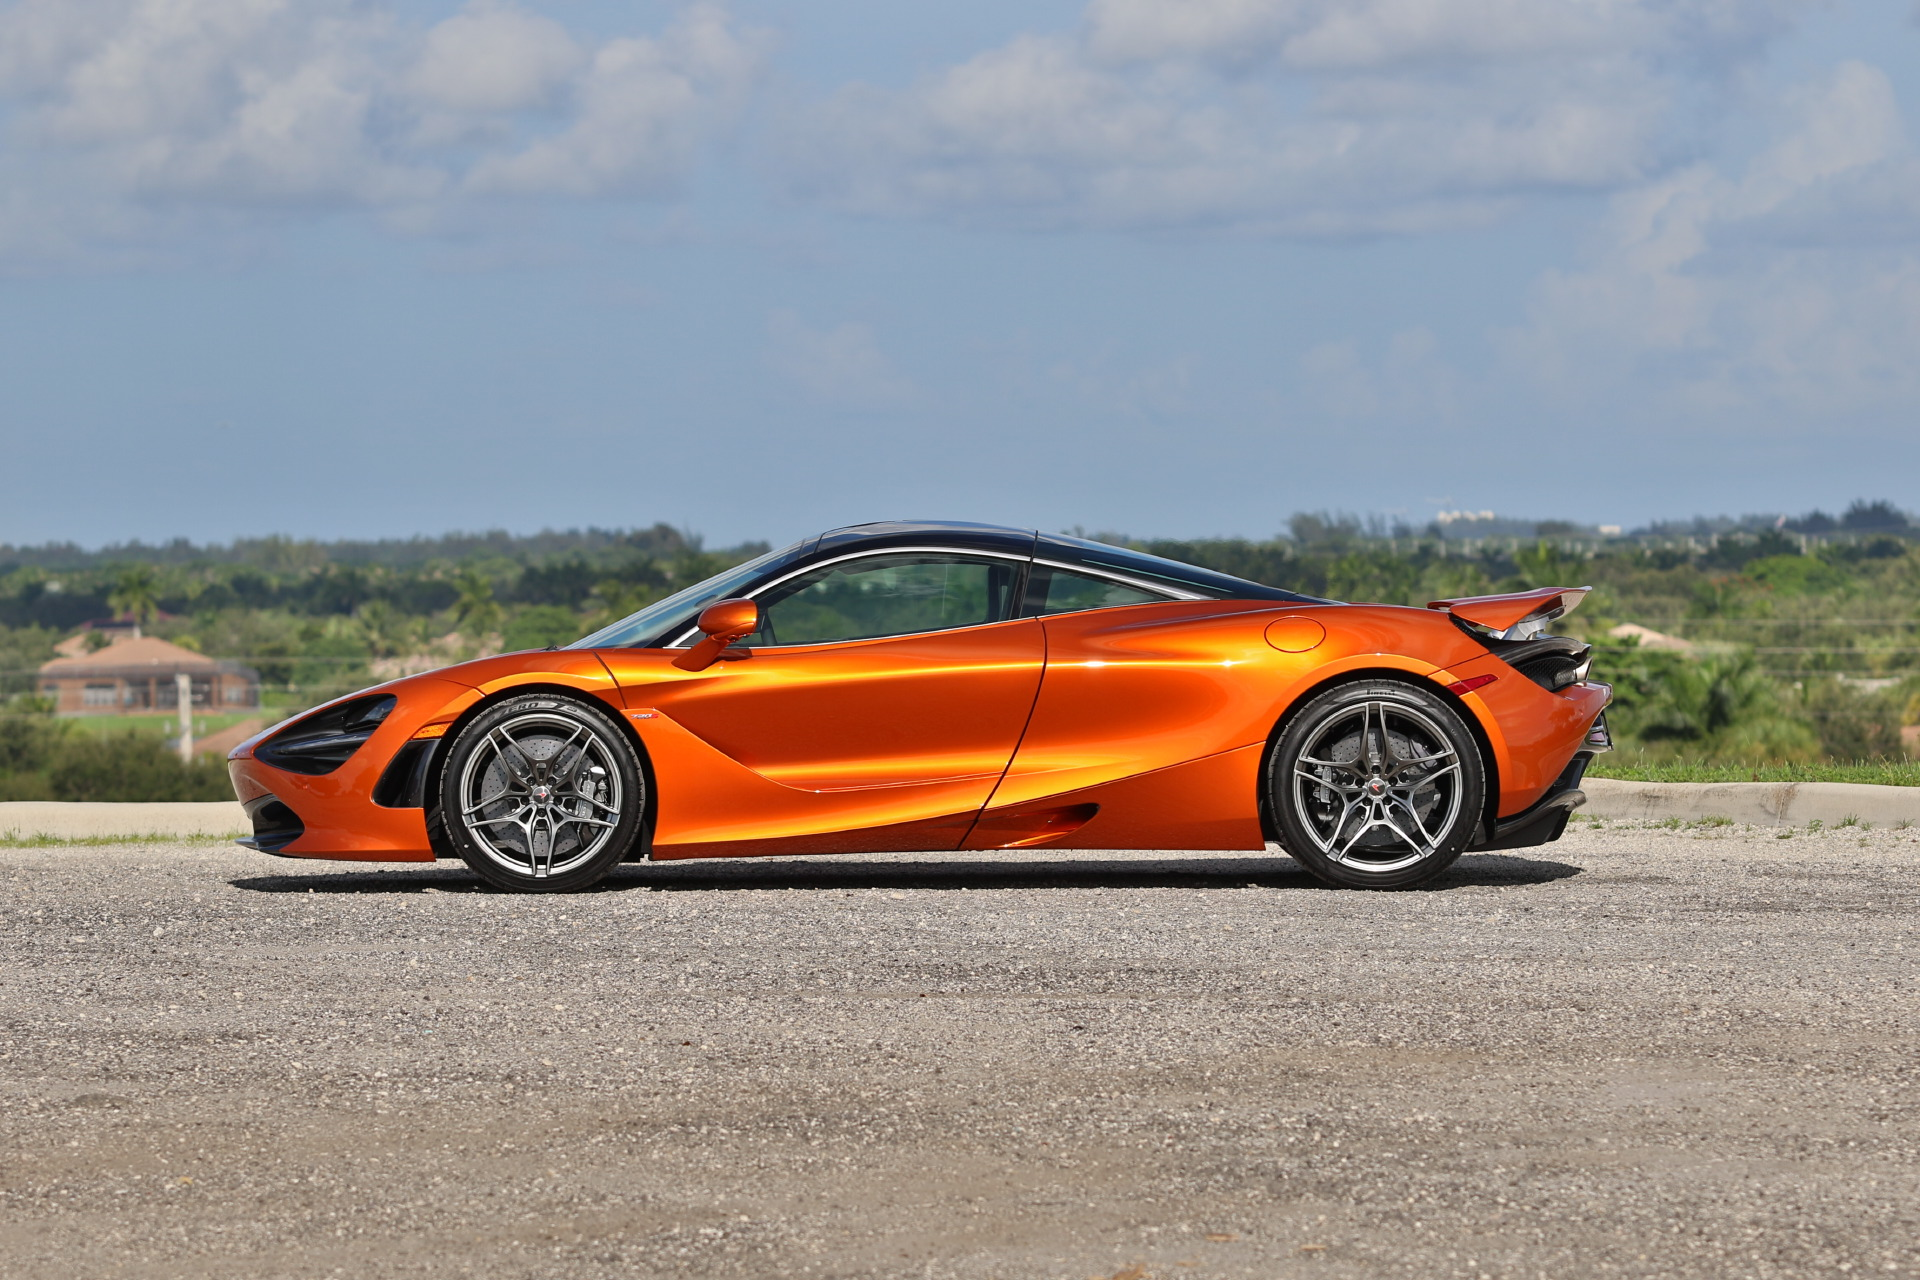 Mclaren 720s Delivery First Drive And Photo Drone Gallery Dragtimes Com Drag Racing Fast